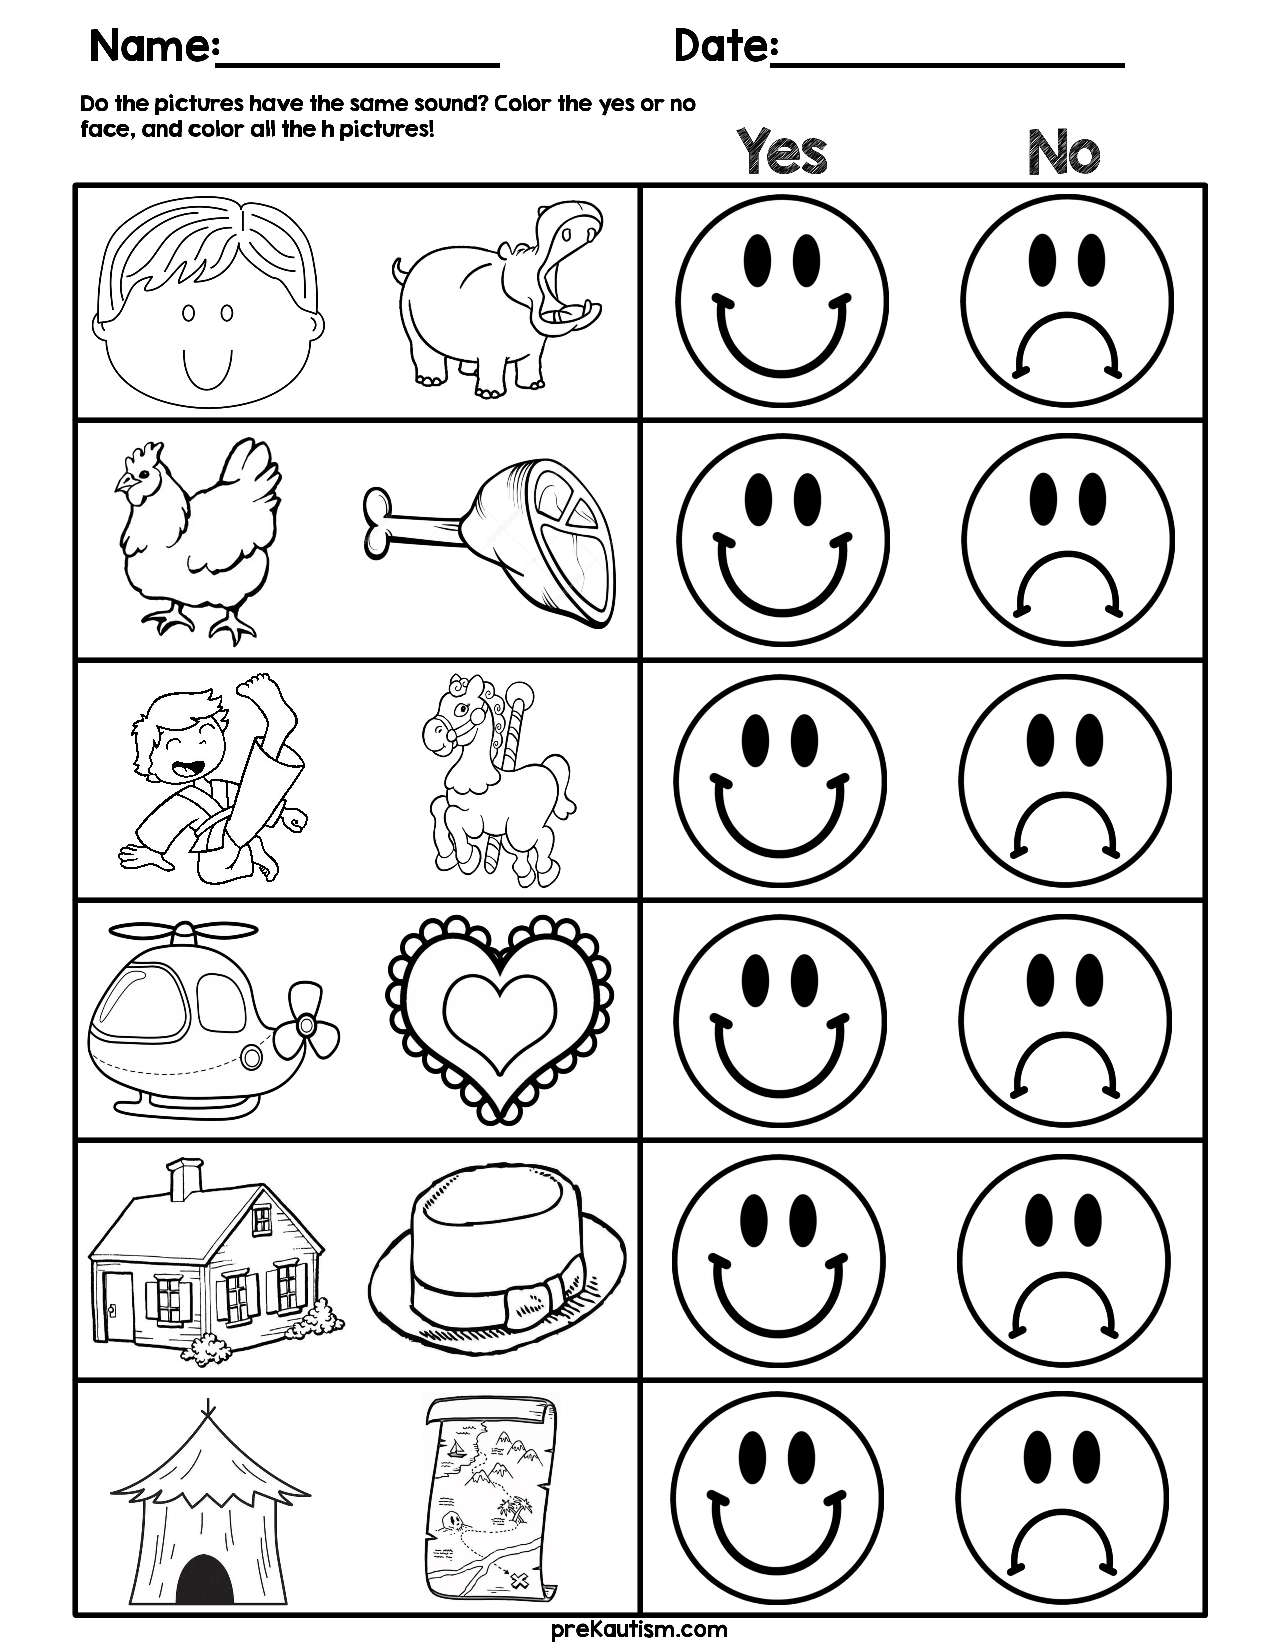 Consonant Sound Match Worksheets Worksheets, Preschool